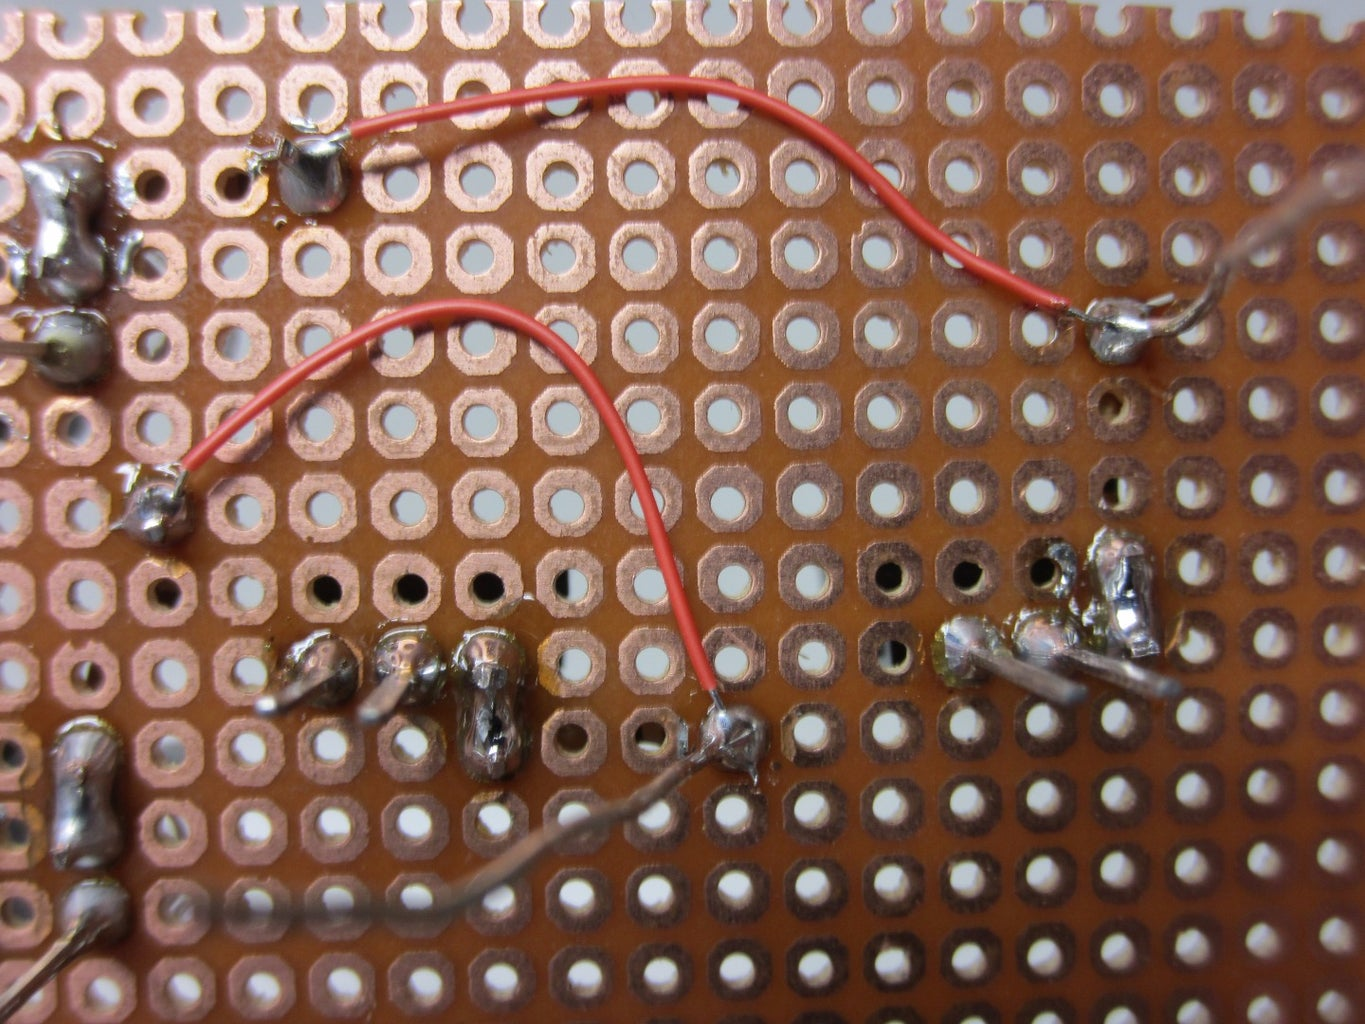 Connect the Resistors in Pairs